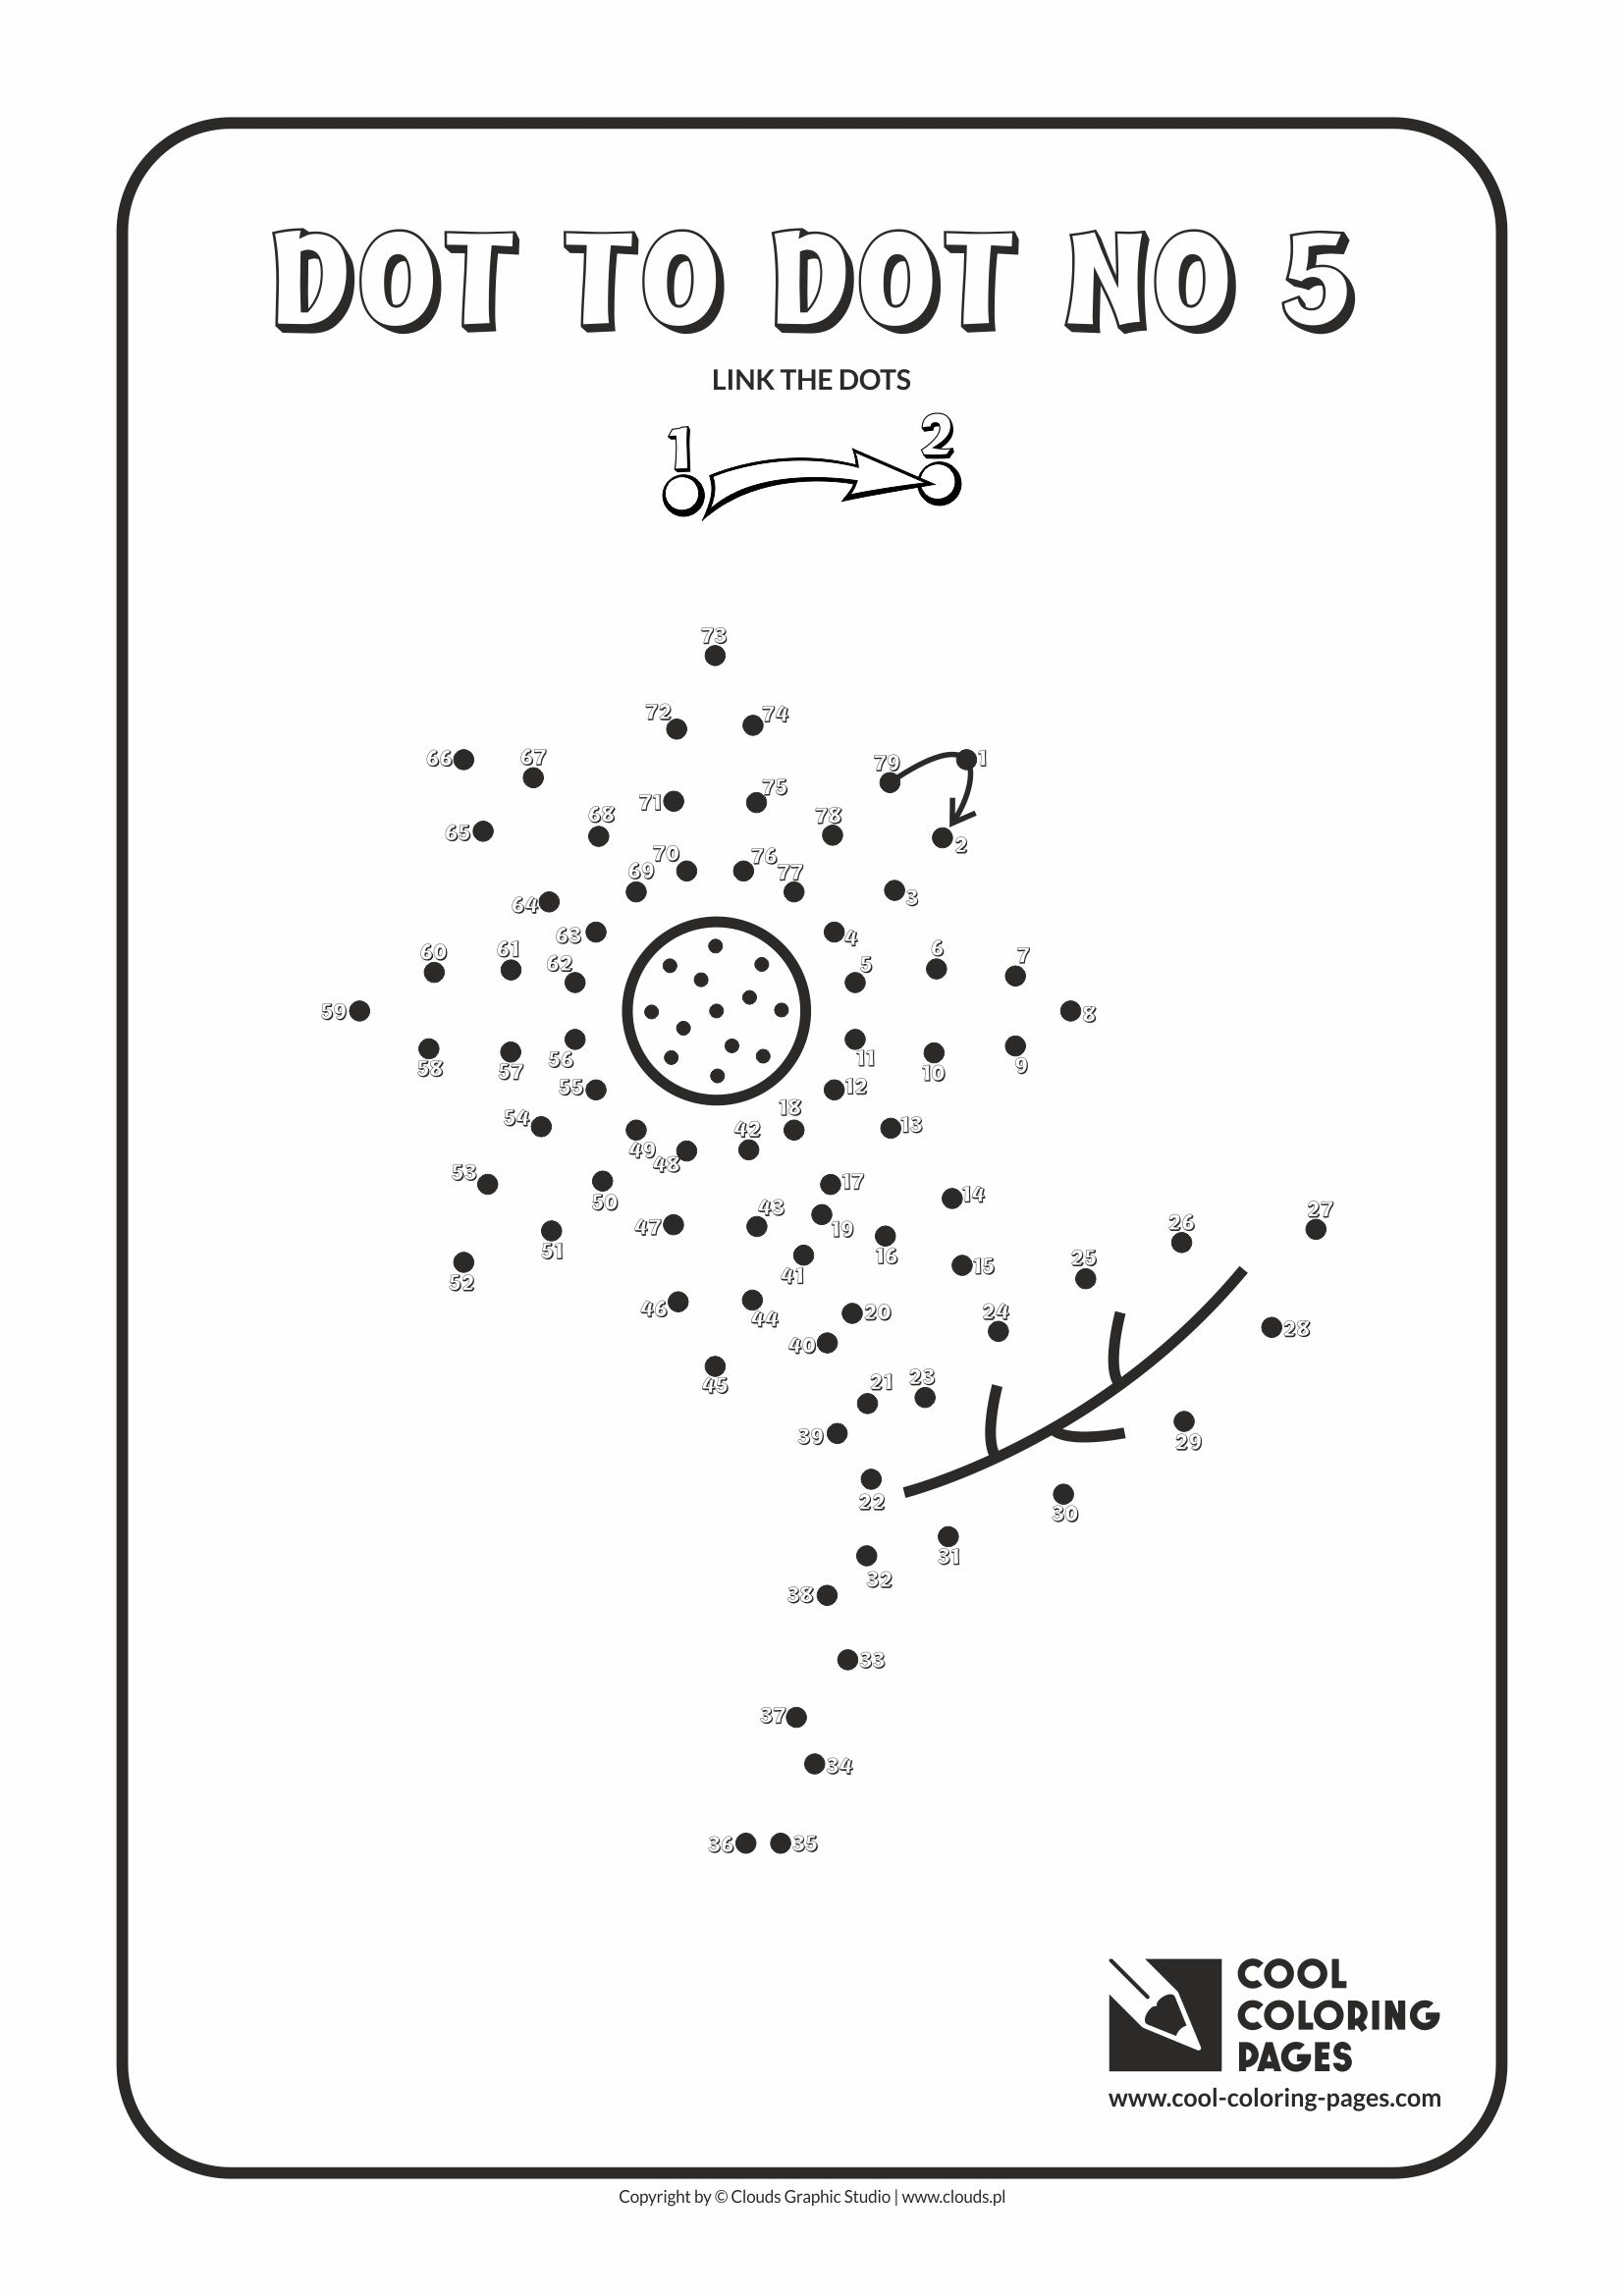 Cool Coloring Pages - Dot to dot / Dot to dot no 5